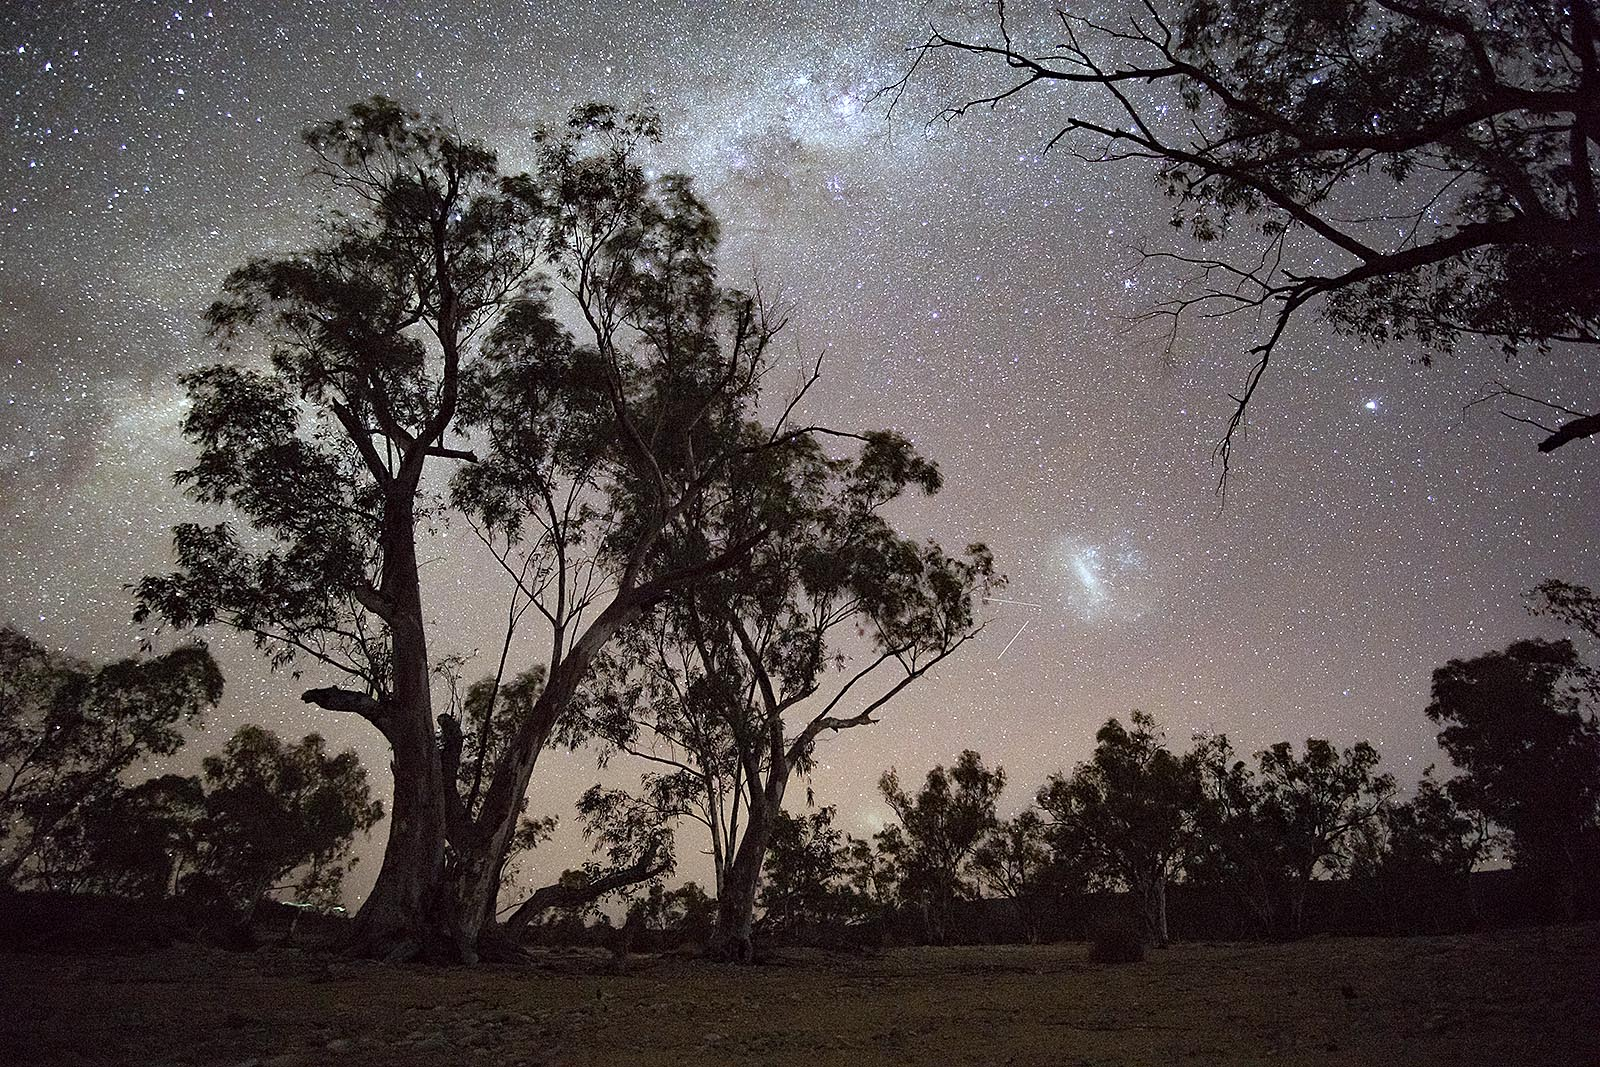 Milky Way from the Larapinta Trail over the Finke River in the Northern Territory of Australia. OrangeBrown